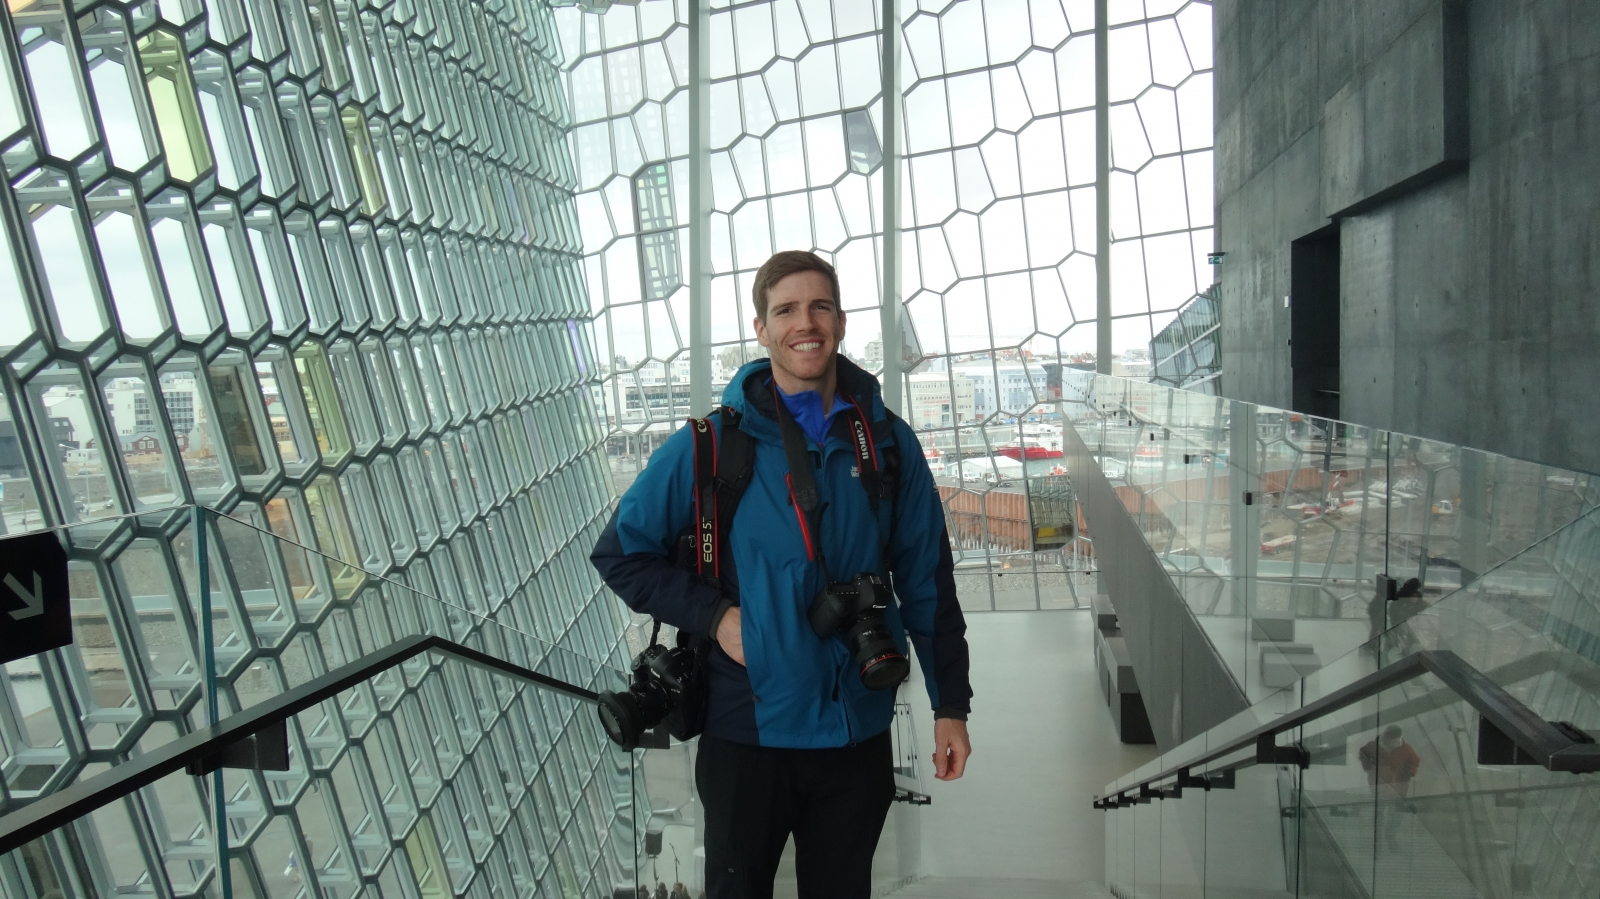 Chad Baumer, man with camera around his neck in a glass room